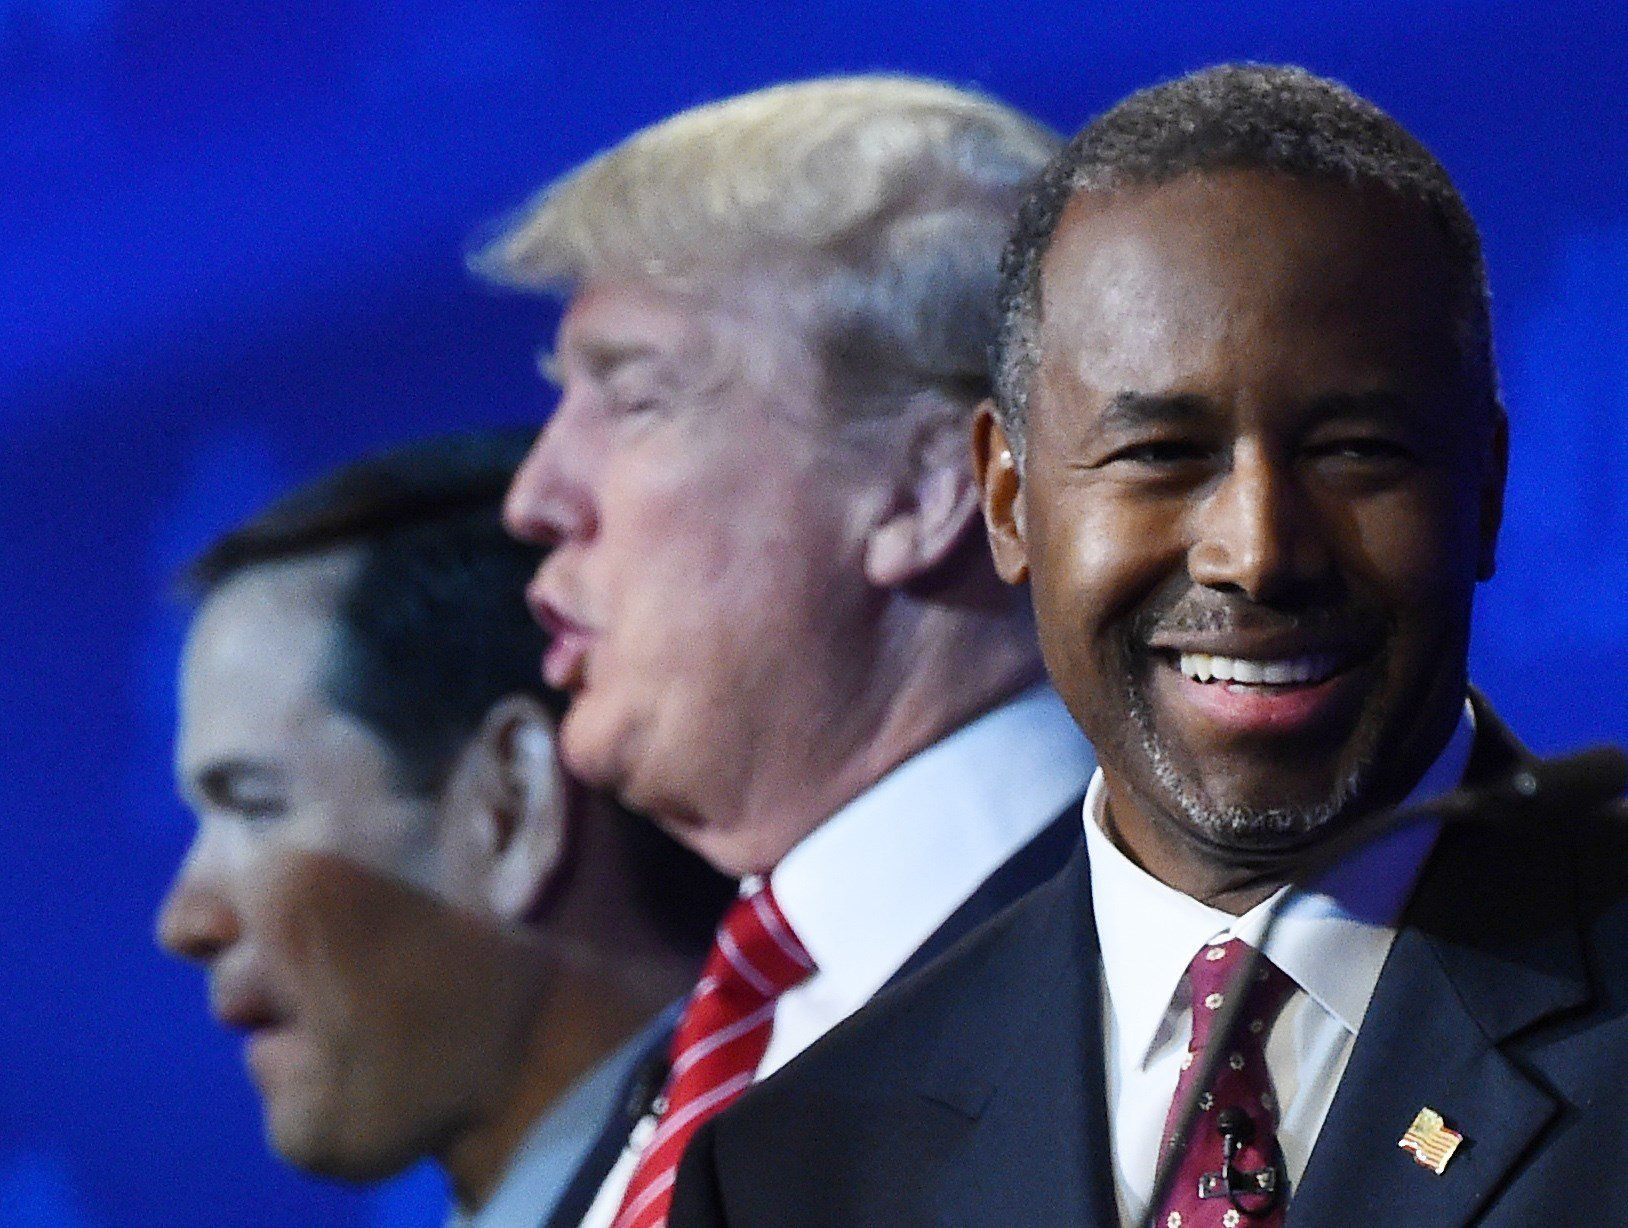 GOP presidential candidate Ben Carson said he uses Mannatech's products but does not have any formal ties to the company.